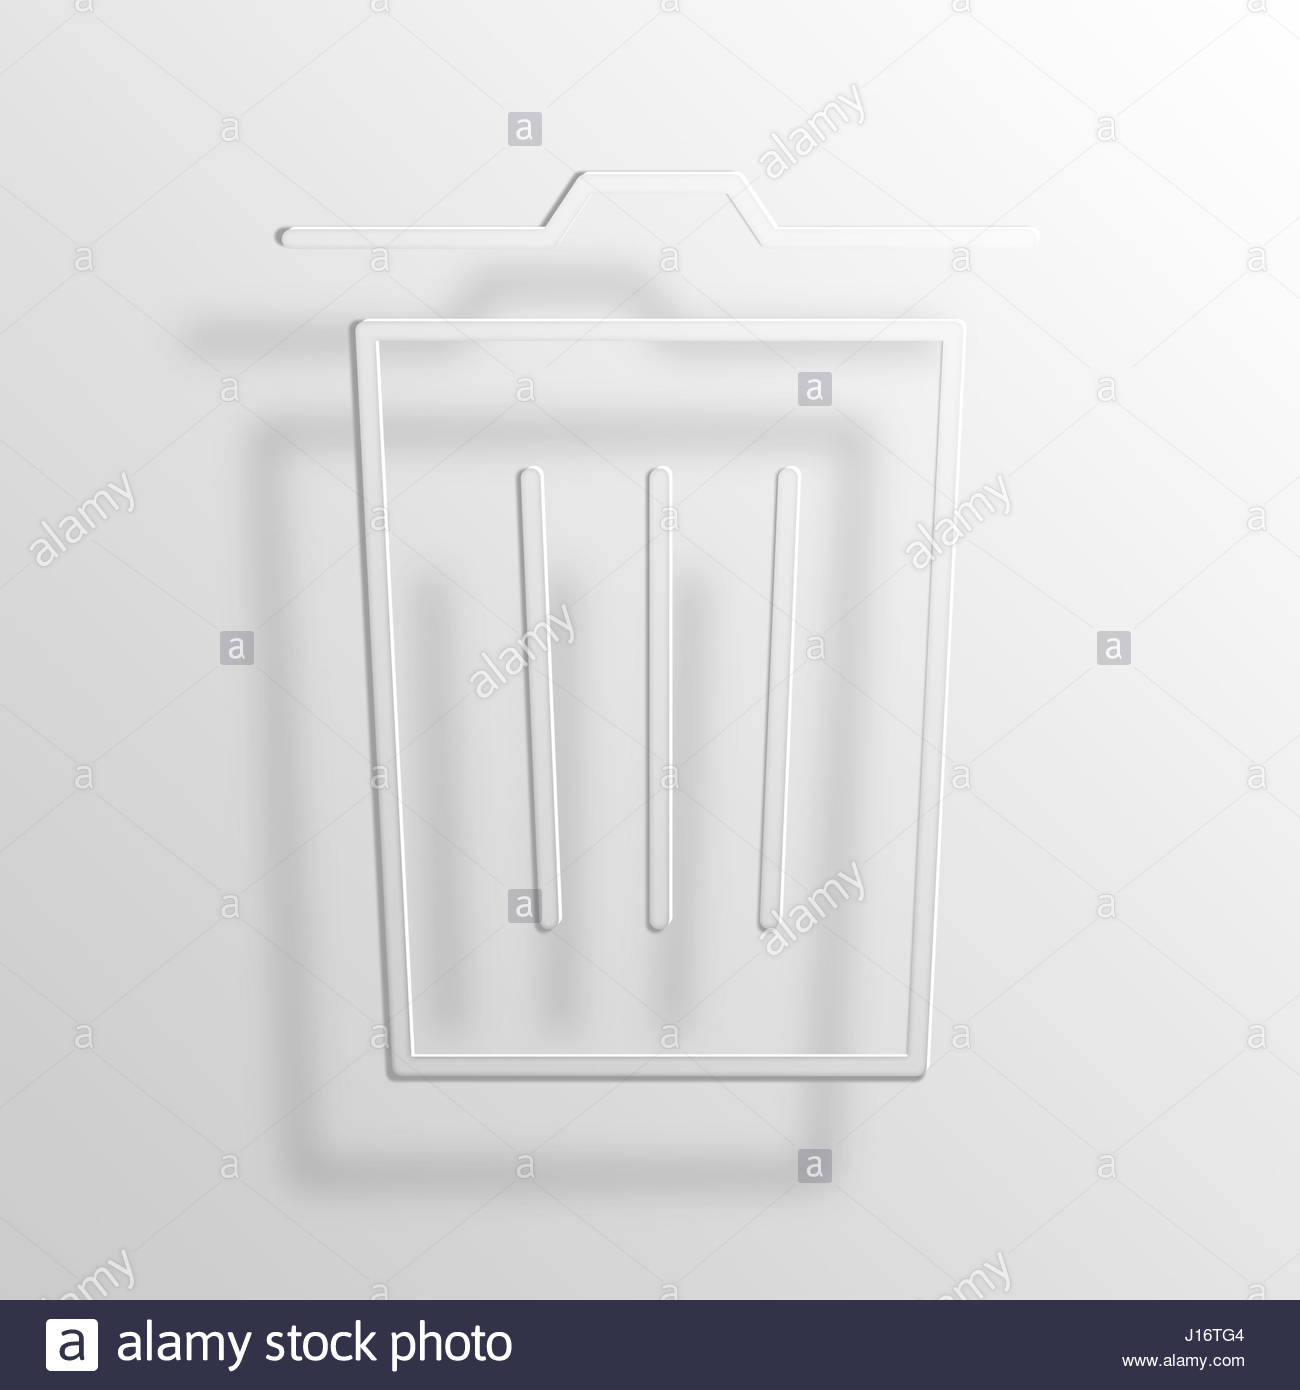 Trash 3d Paper Icon Symbol Business Concept No4810 Stock Photo